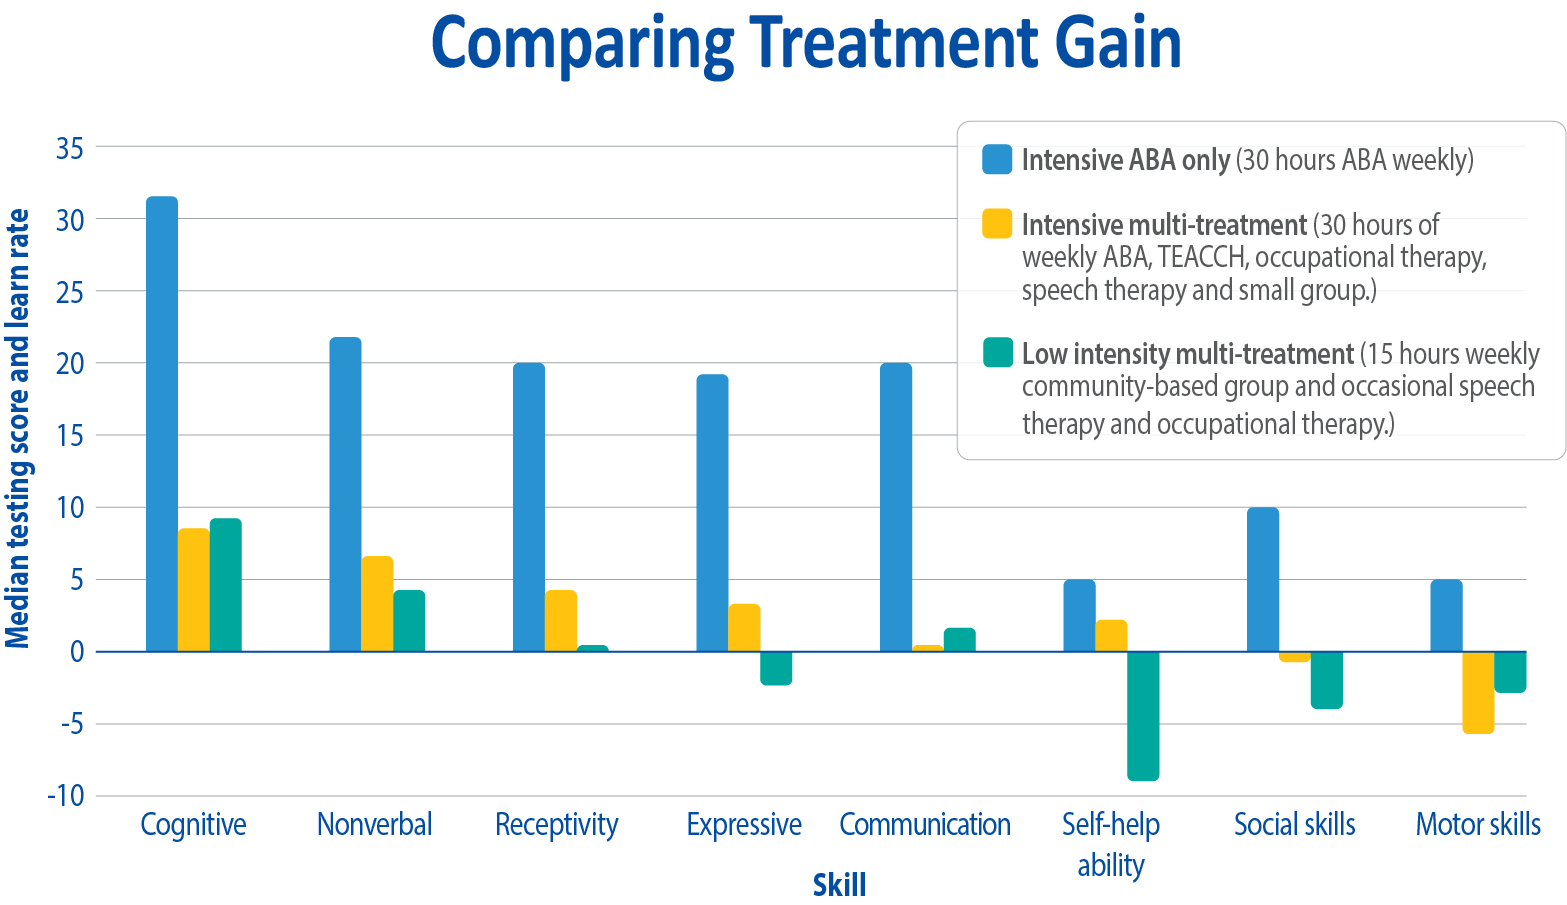 aba-comparing-treatment-gain-english